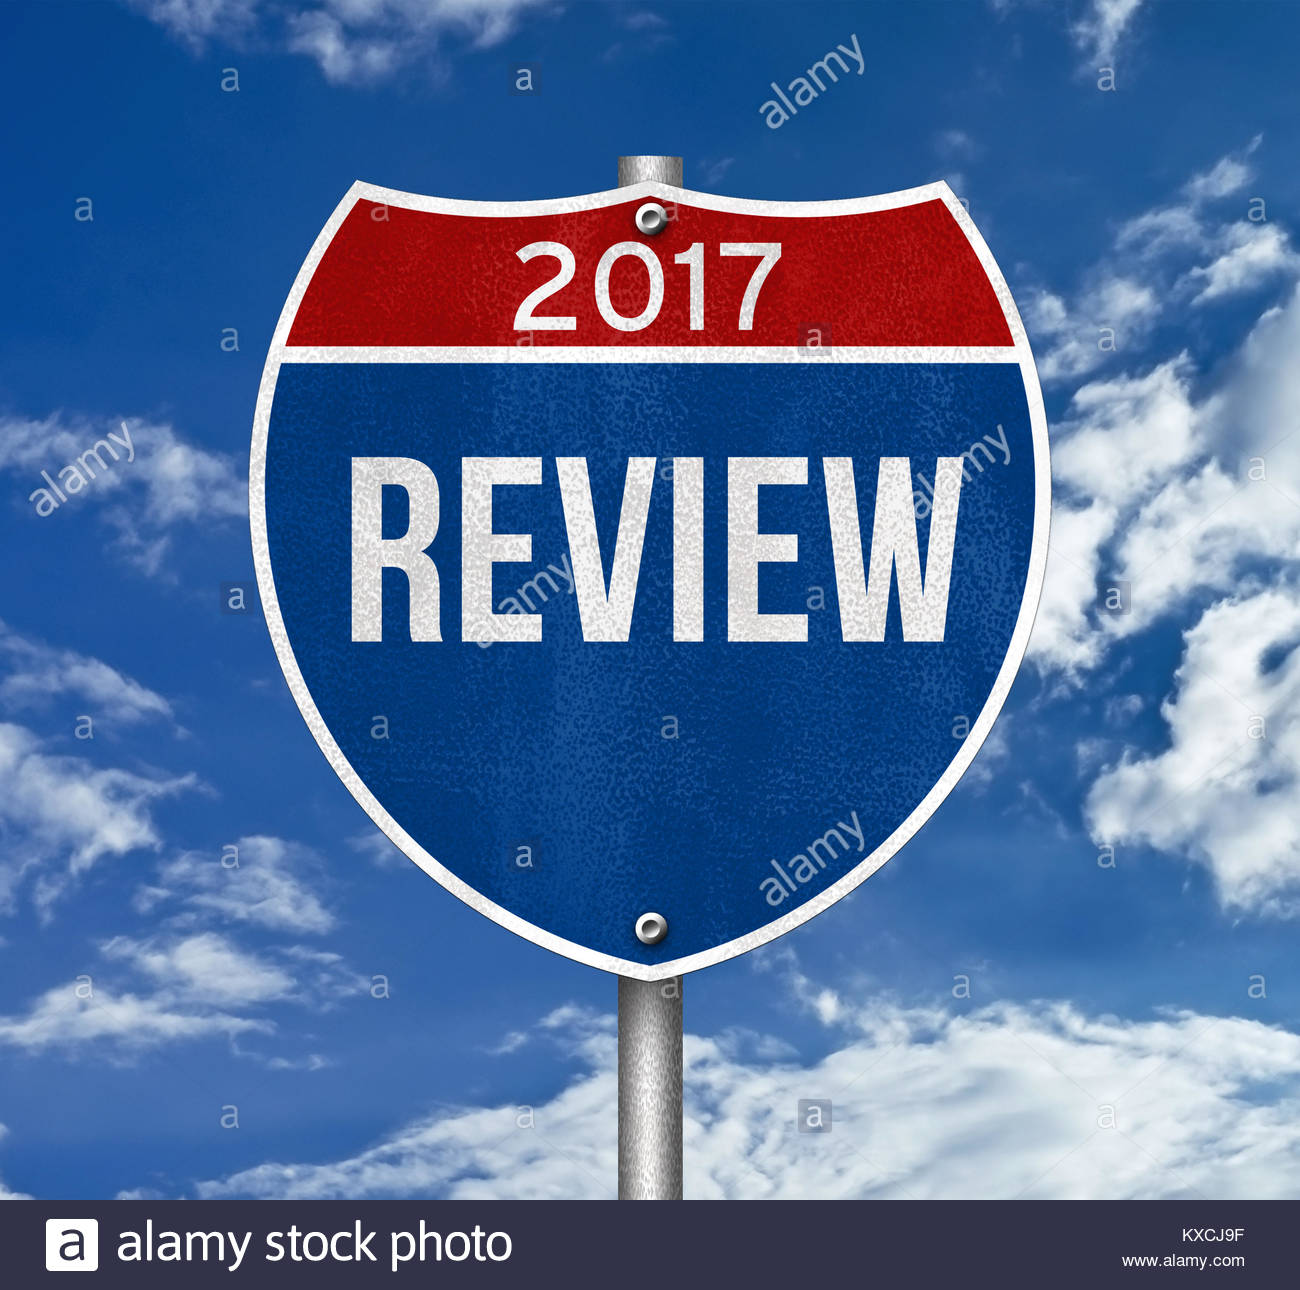 Review 2017 Photo Stock